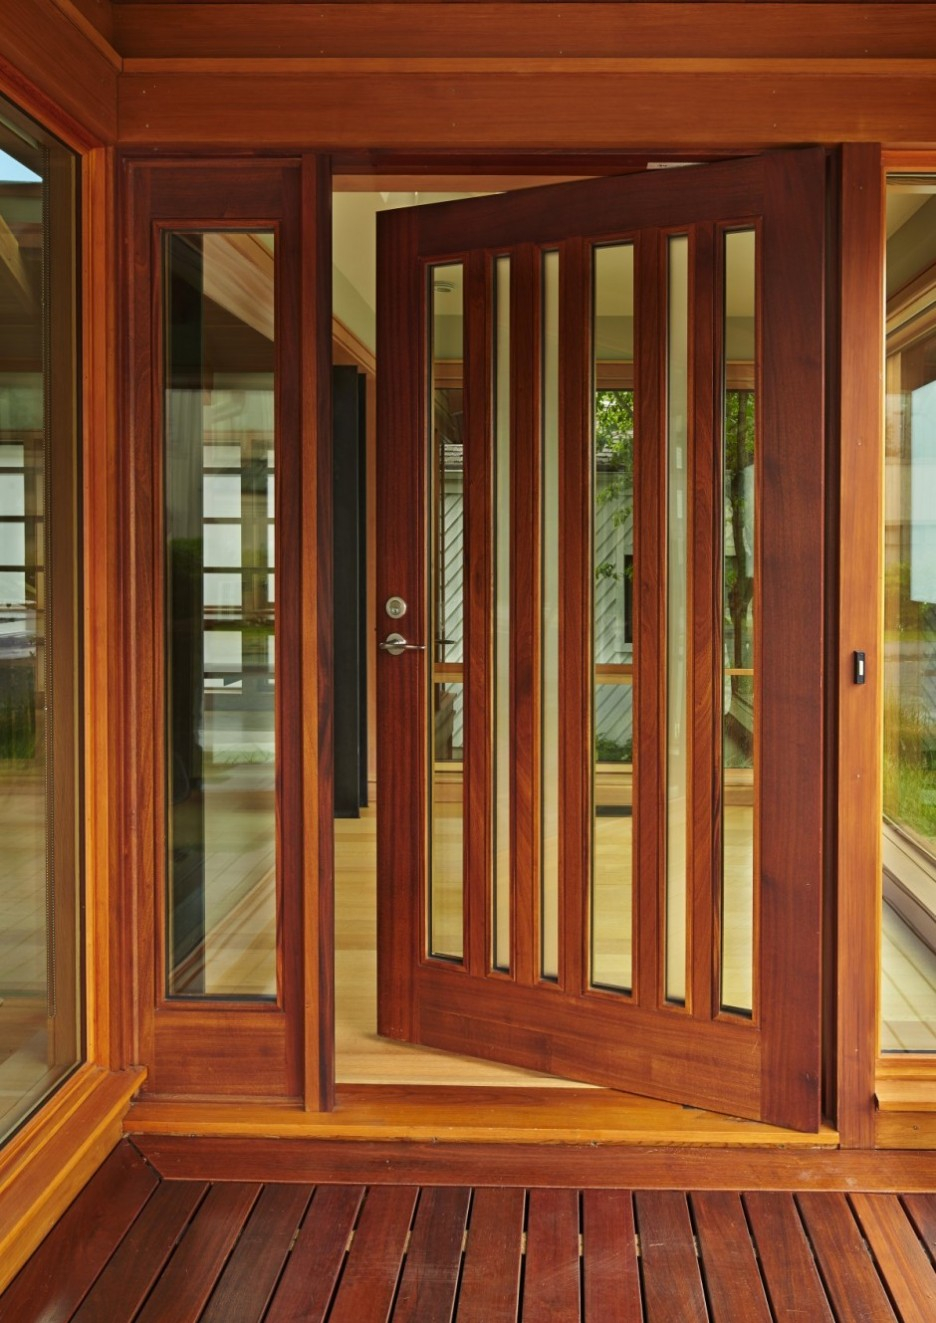 Modular Door And Window Design At Home Design Ideas within Best of Door And Window Design Image